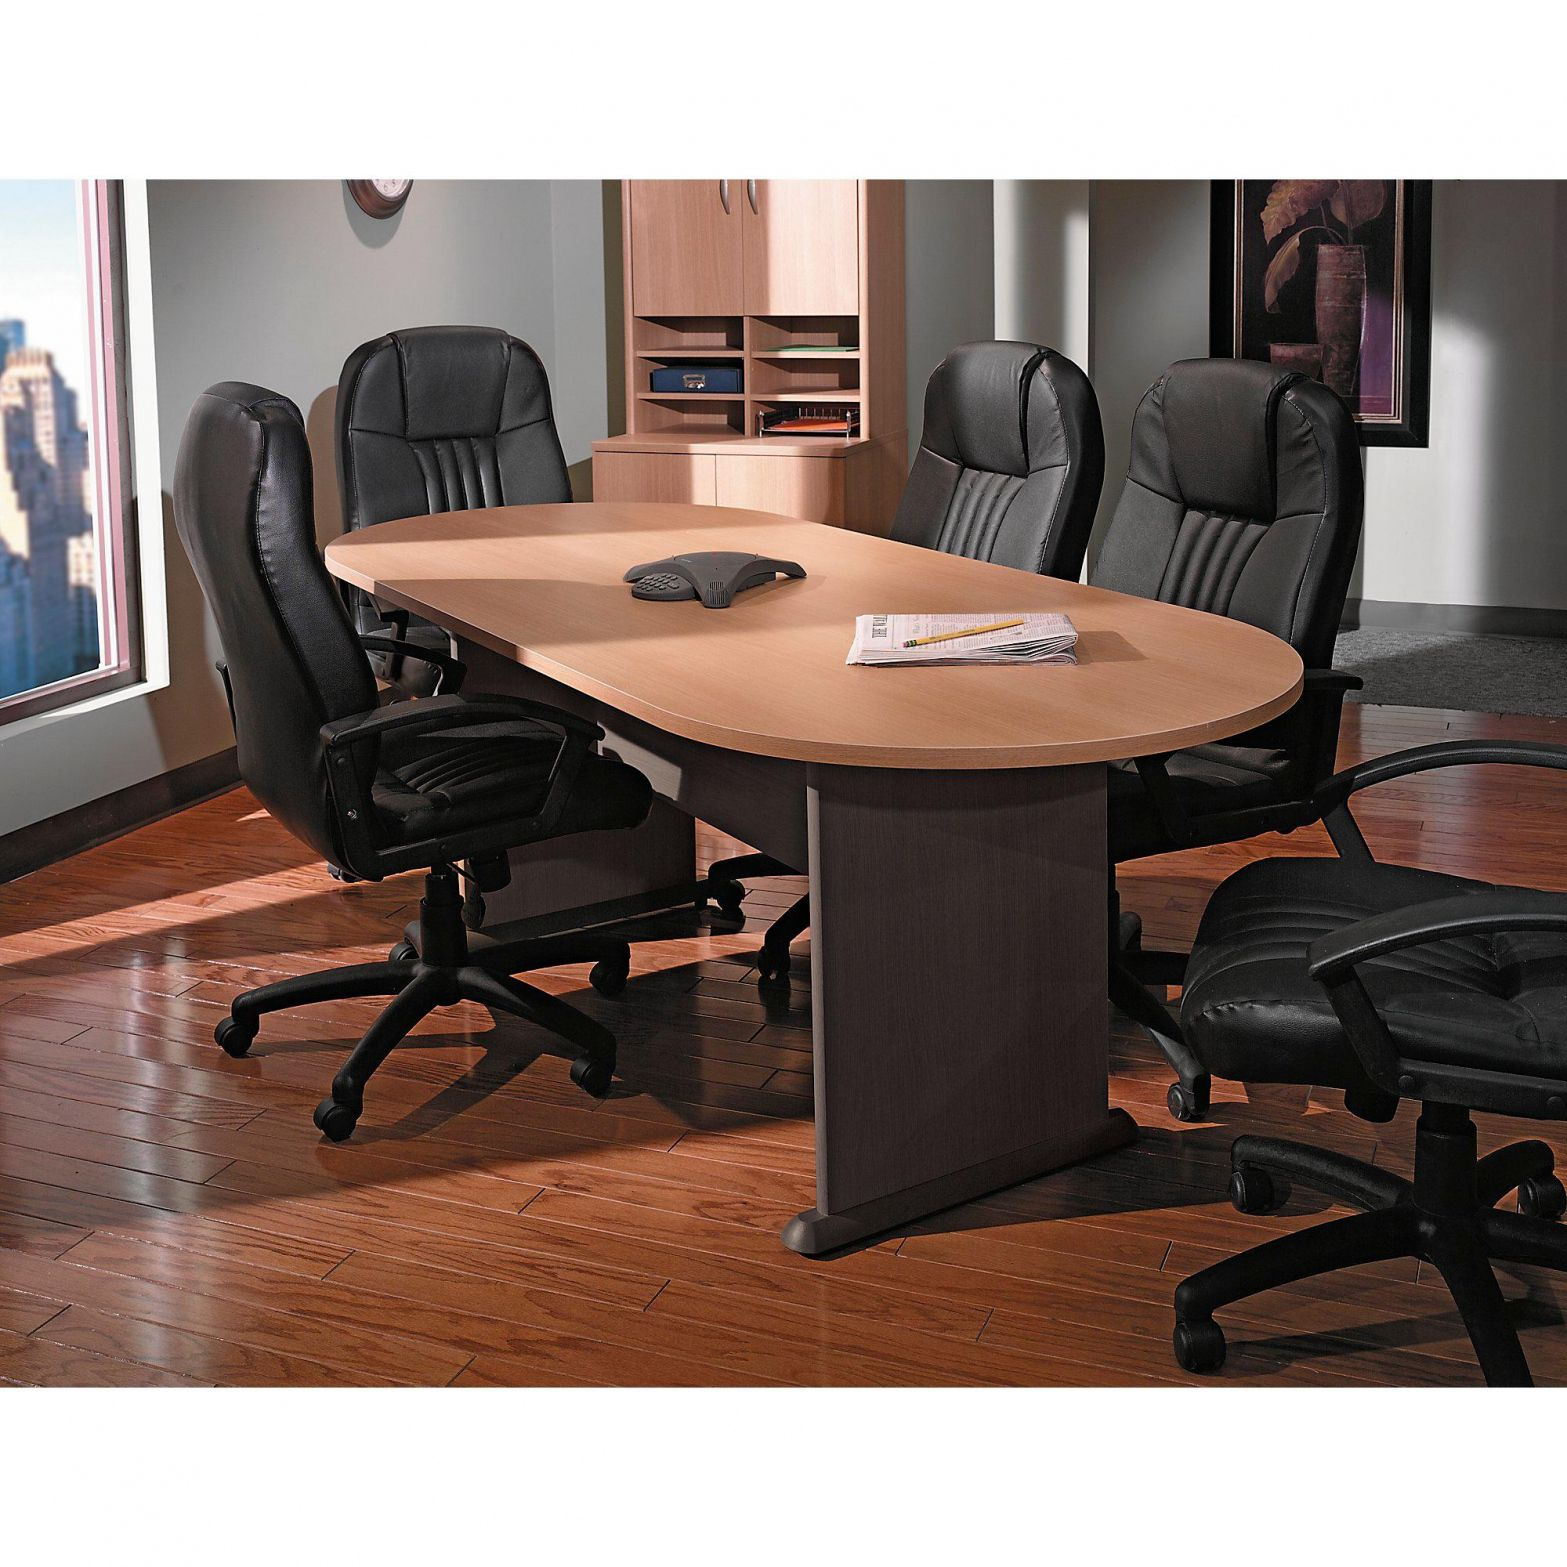 round office desks. 99+ Small Round Table For Office - Home Furniture Desk Check More At Http Desks U